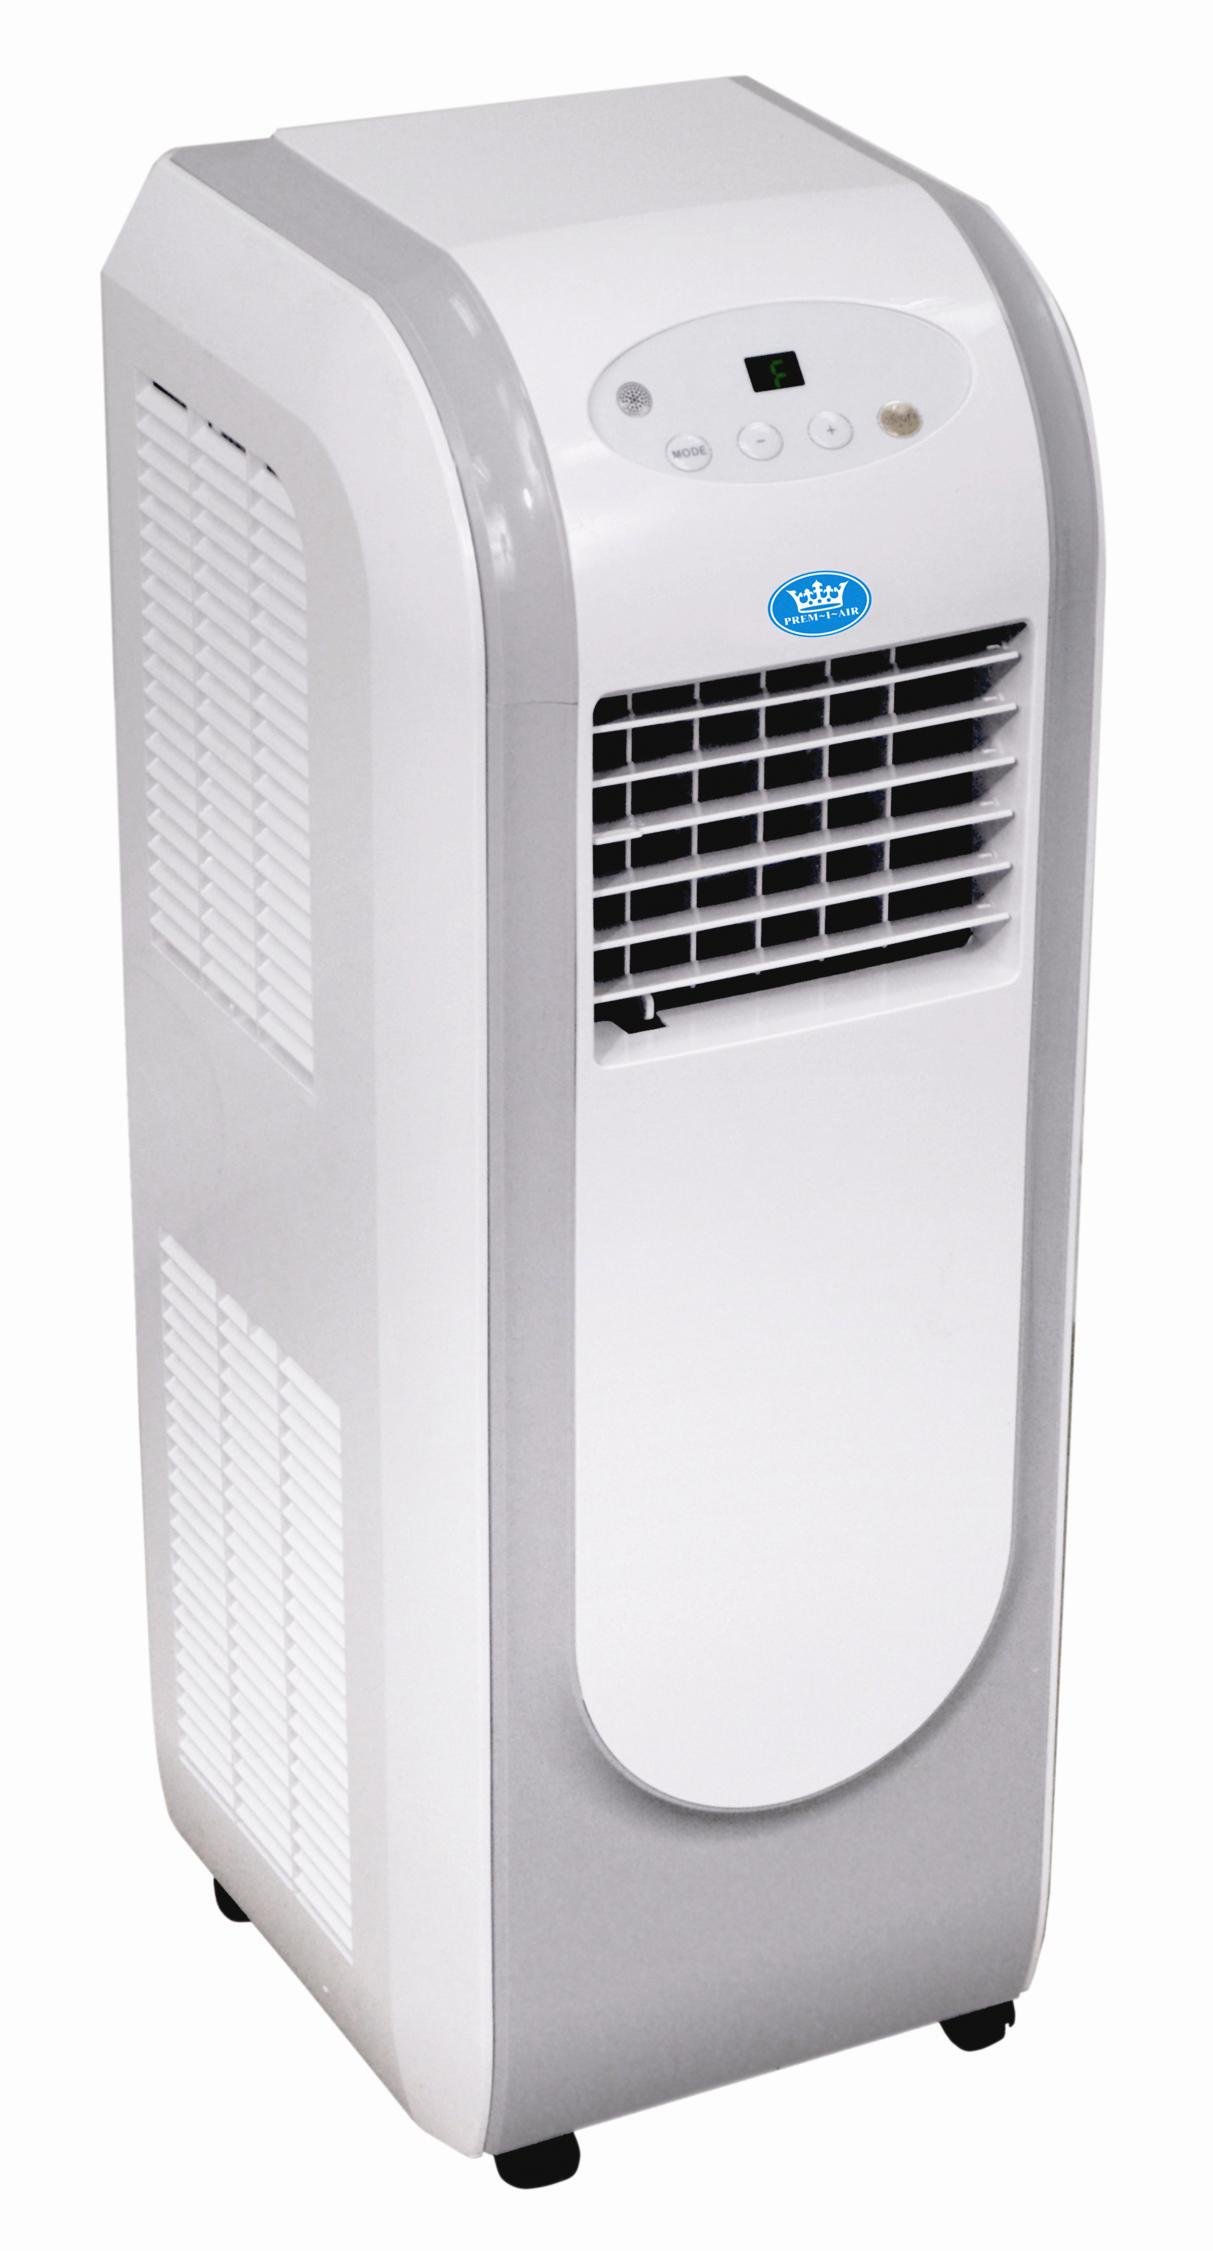 prem i air erh1614 8000btu portable air conditioning unit - Air Conditioning Units